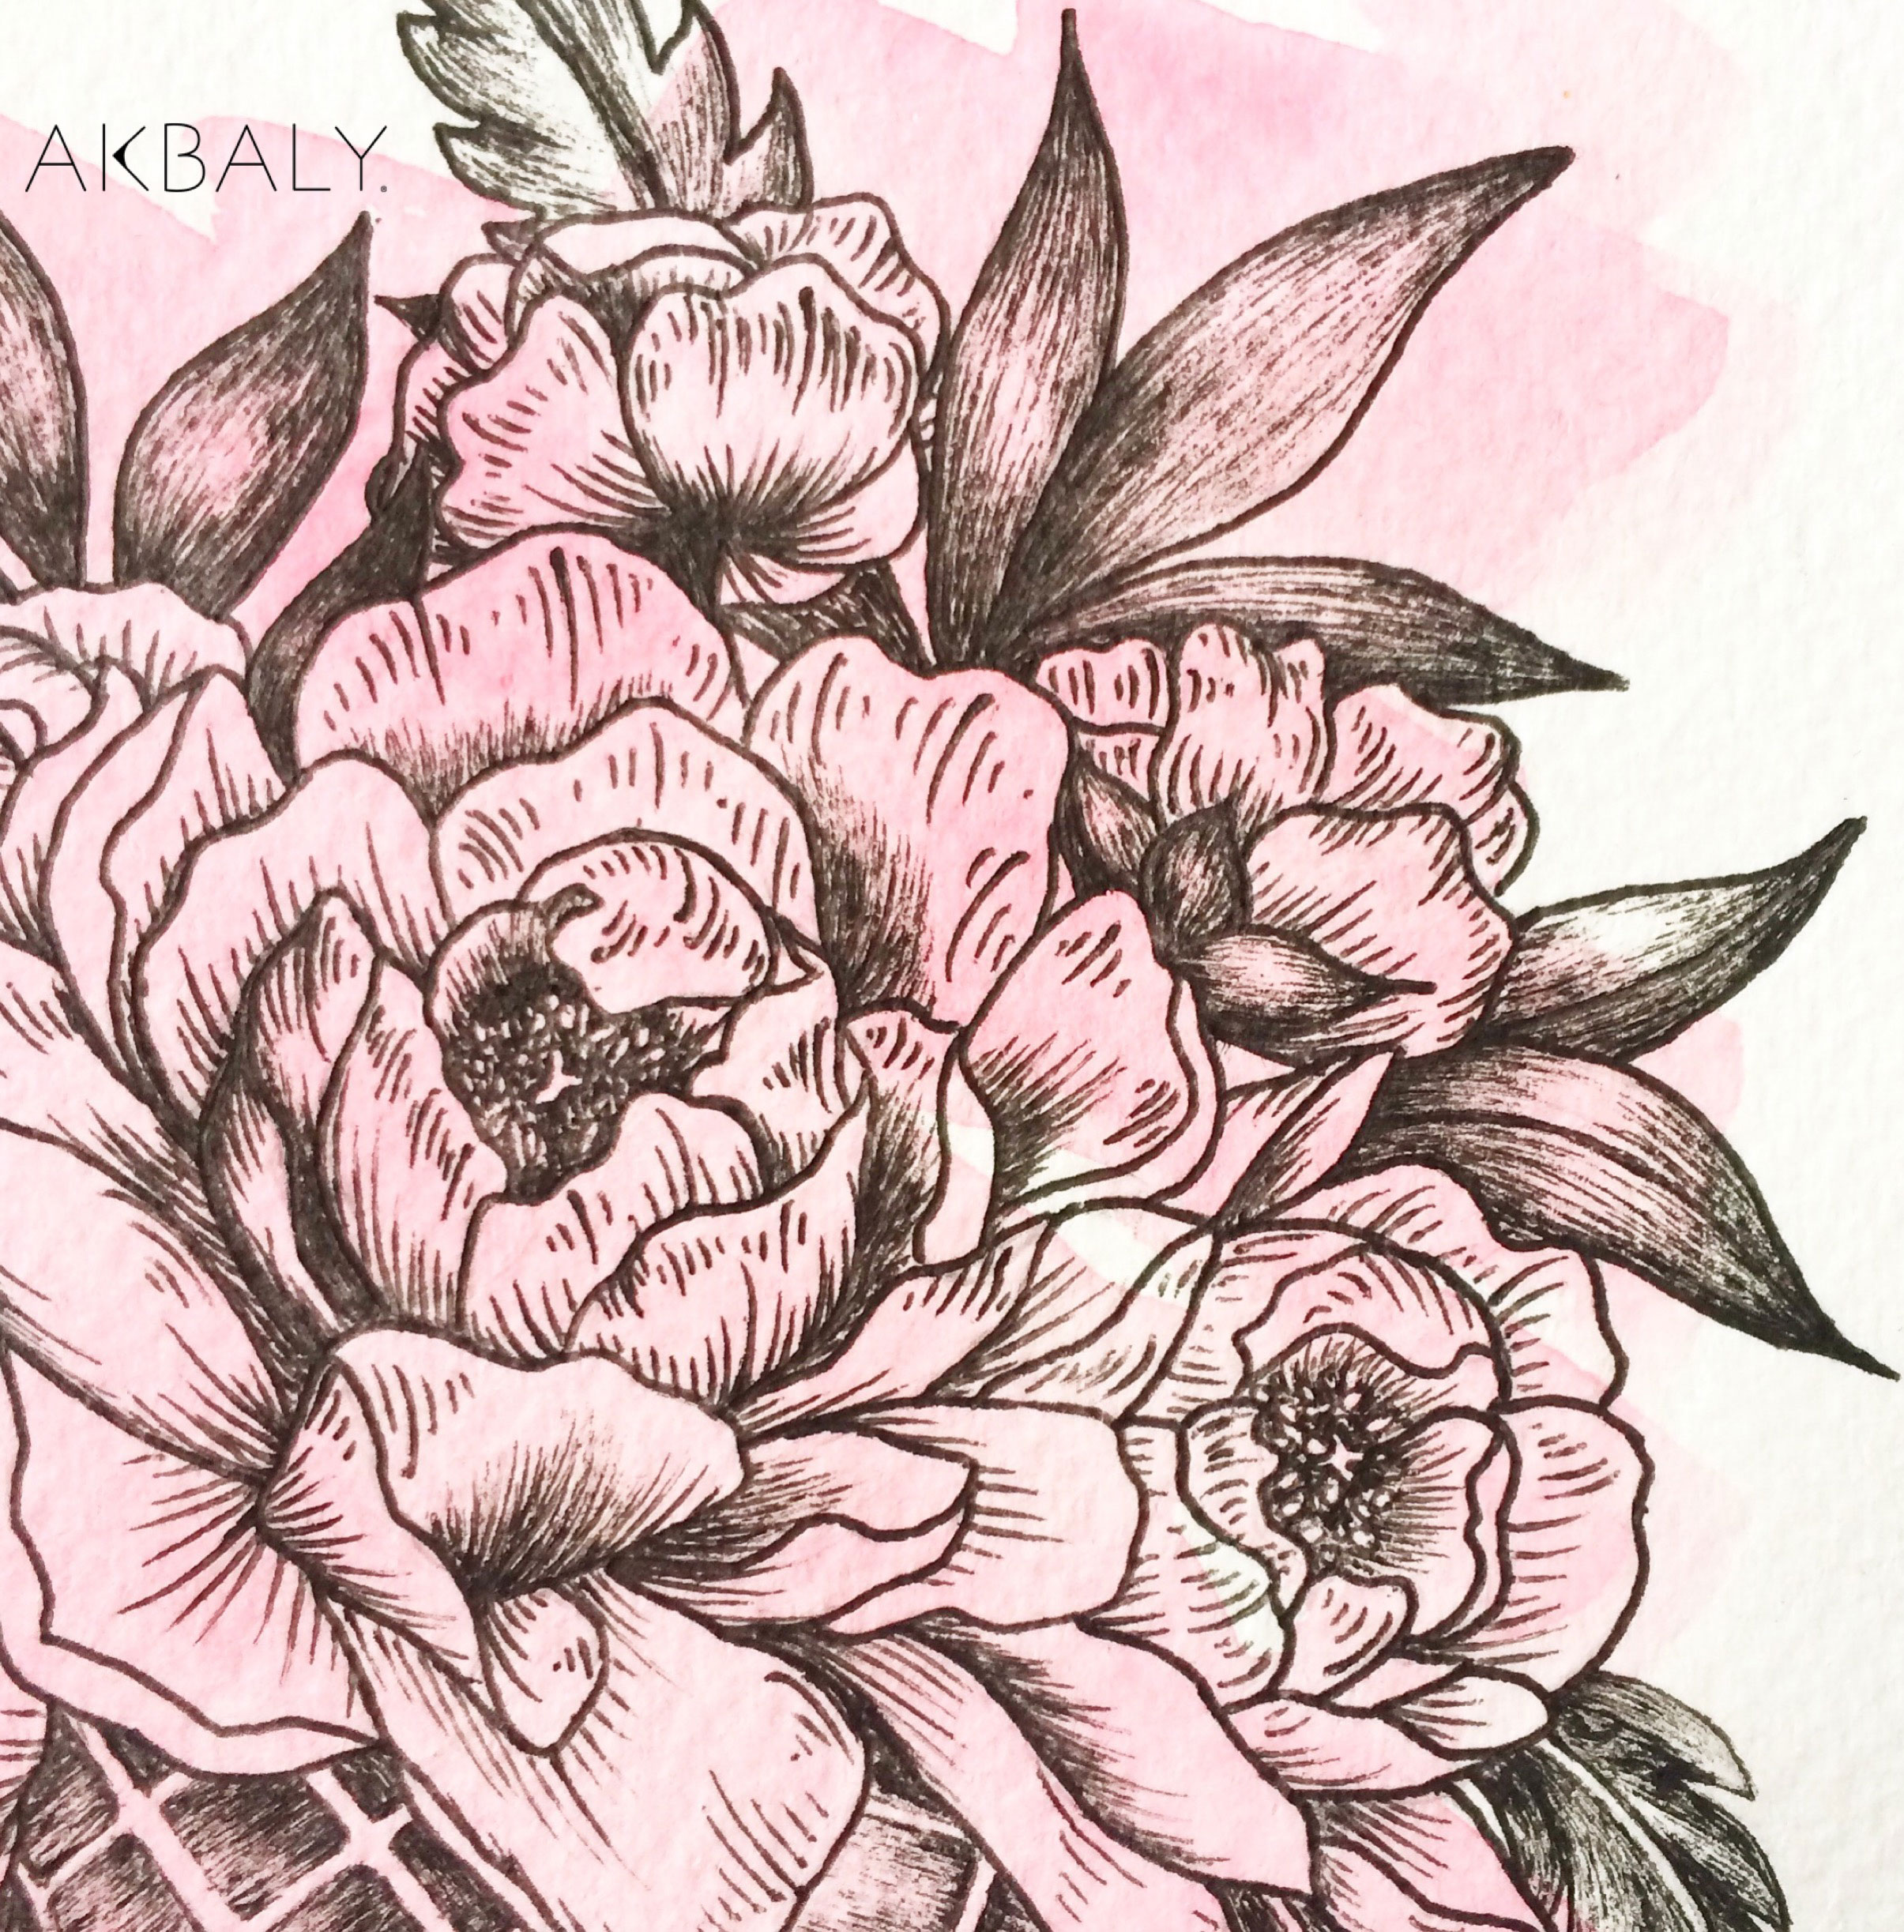 Illustration Floral Collection All In Pink Floral Ice cream Close Up Ink Watercolor